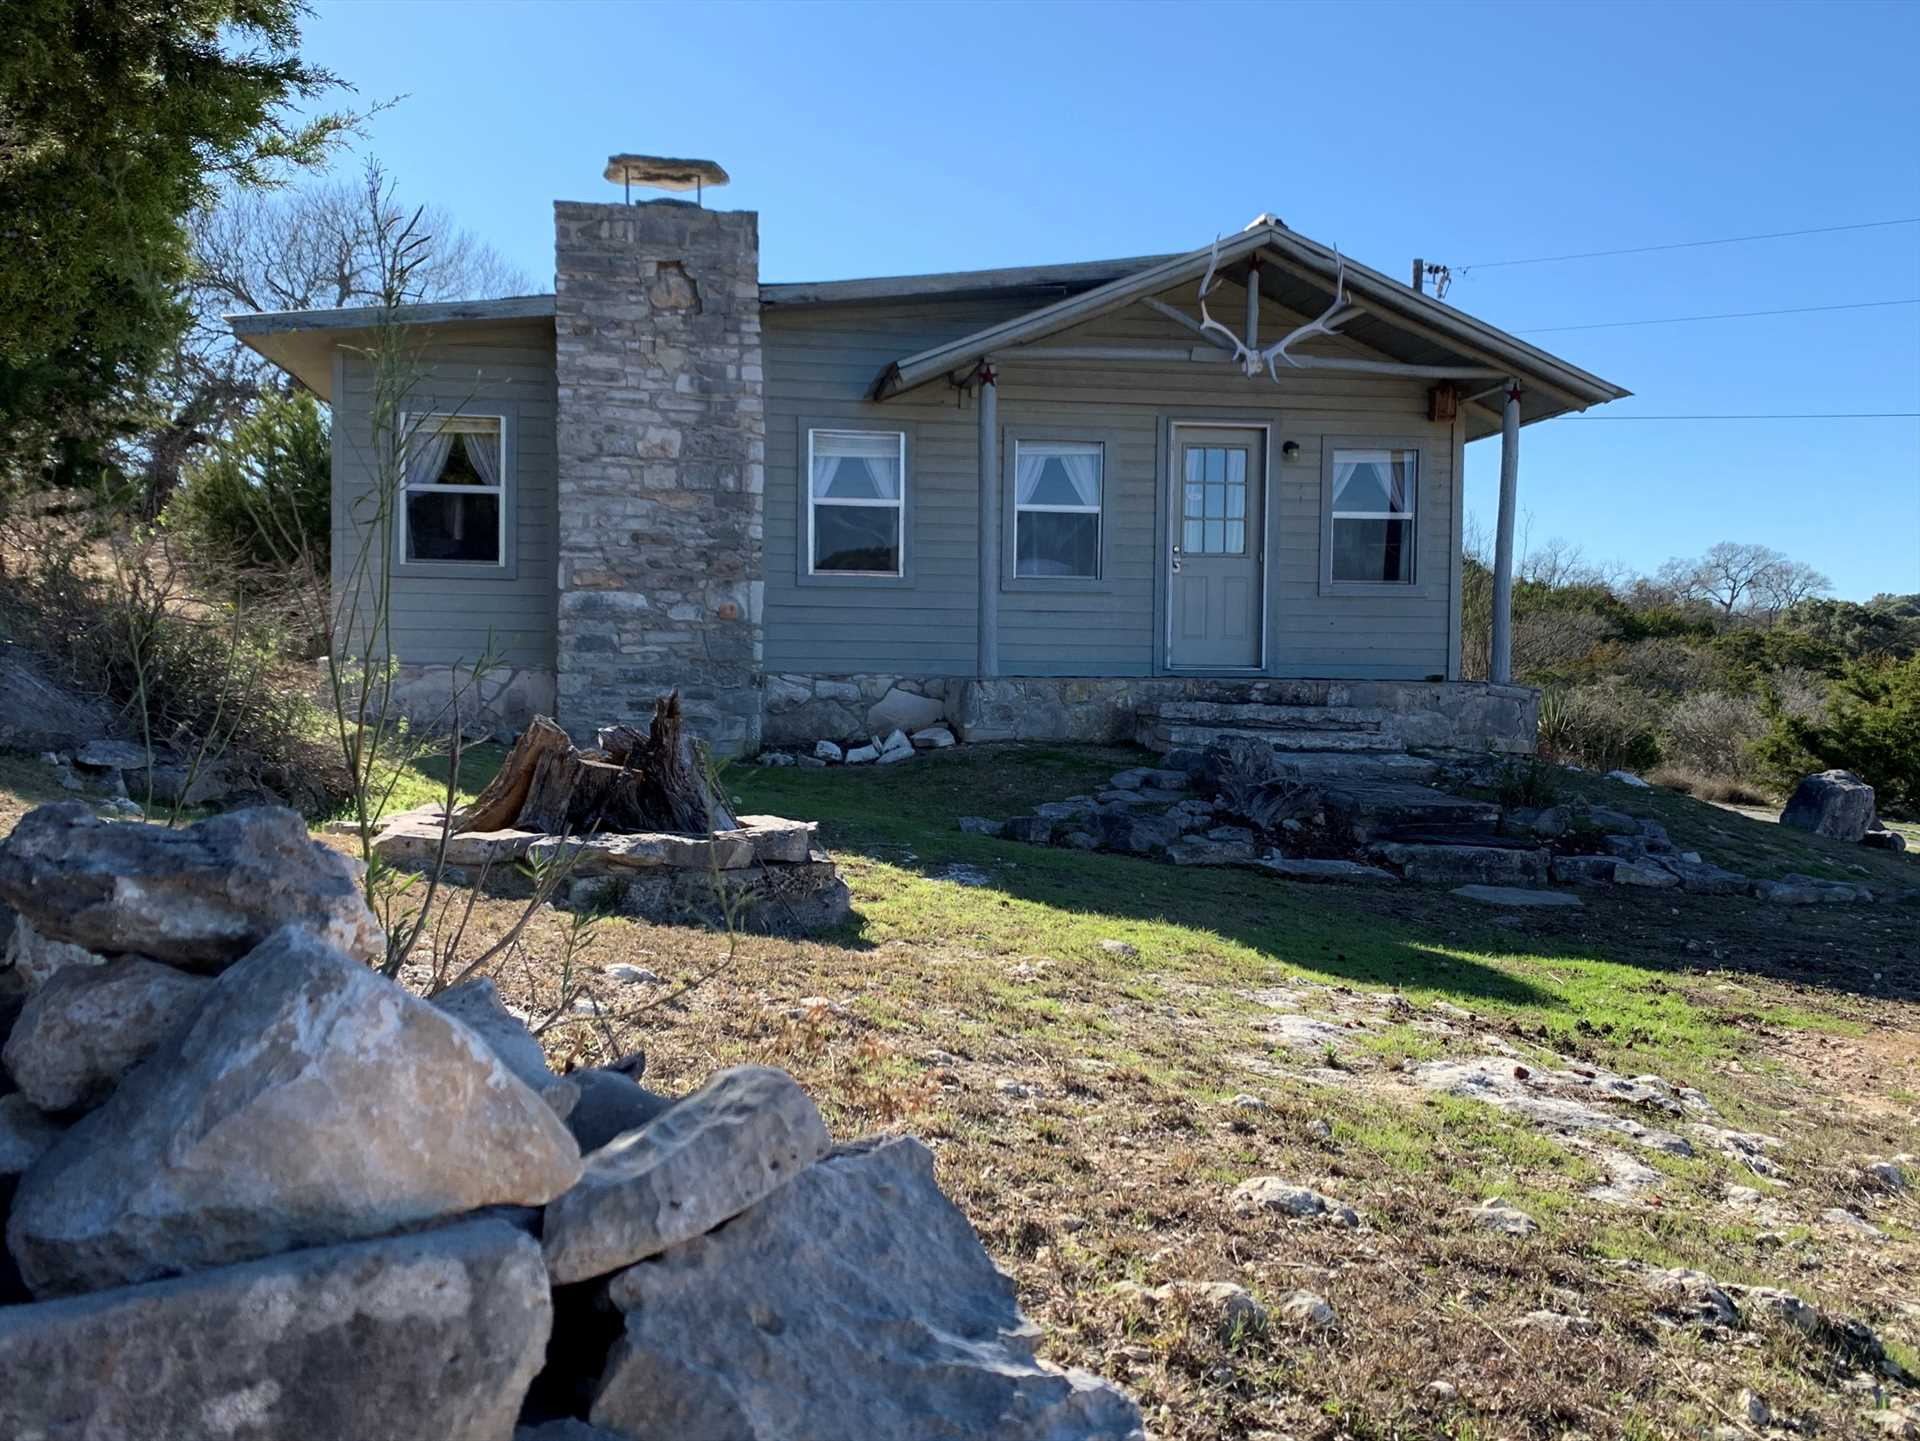 Overlooking the grandeur of the Hill Country is the aptly-named Hill House!